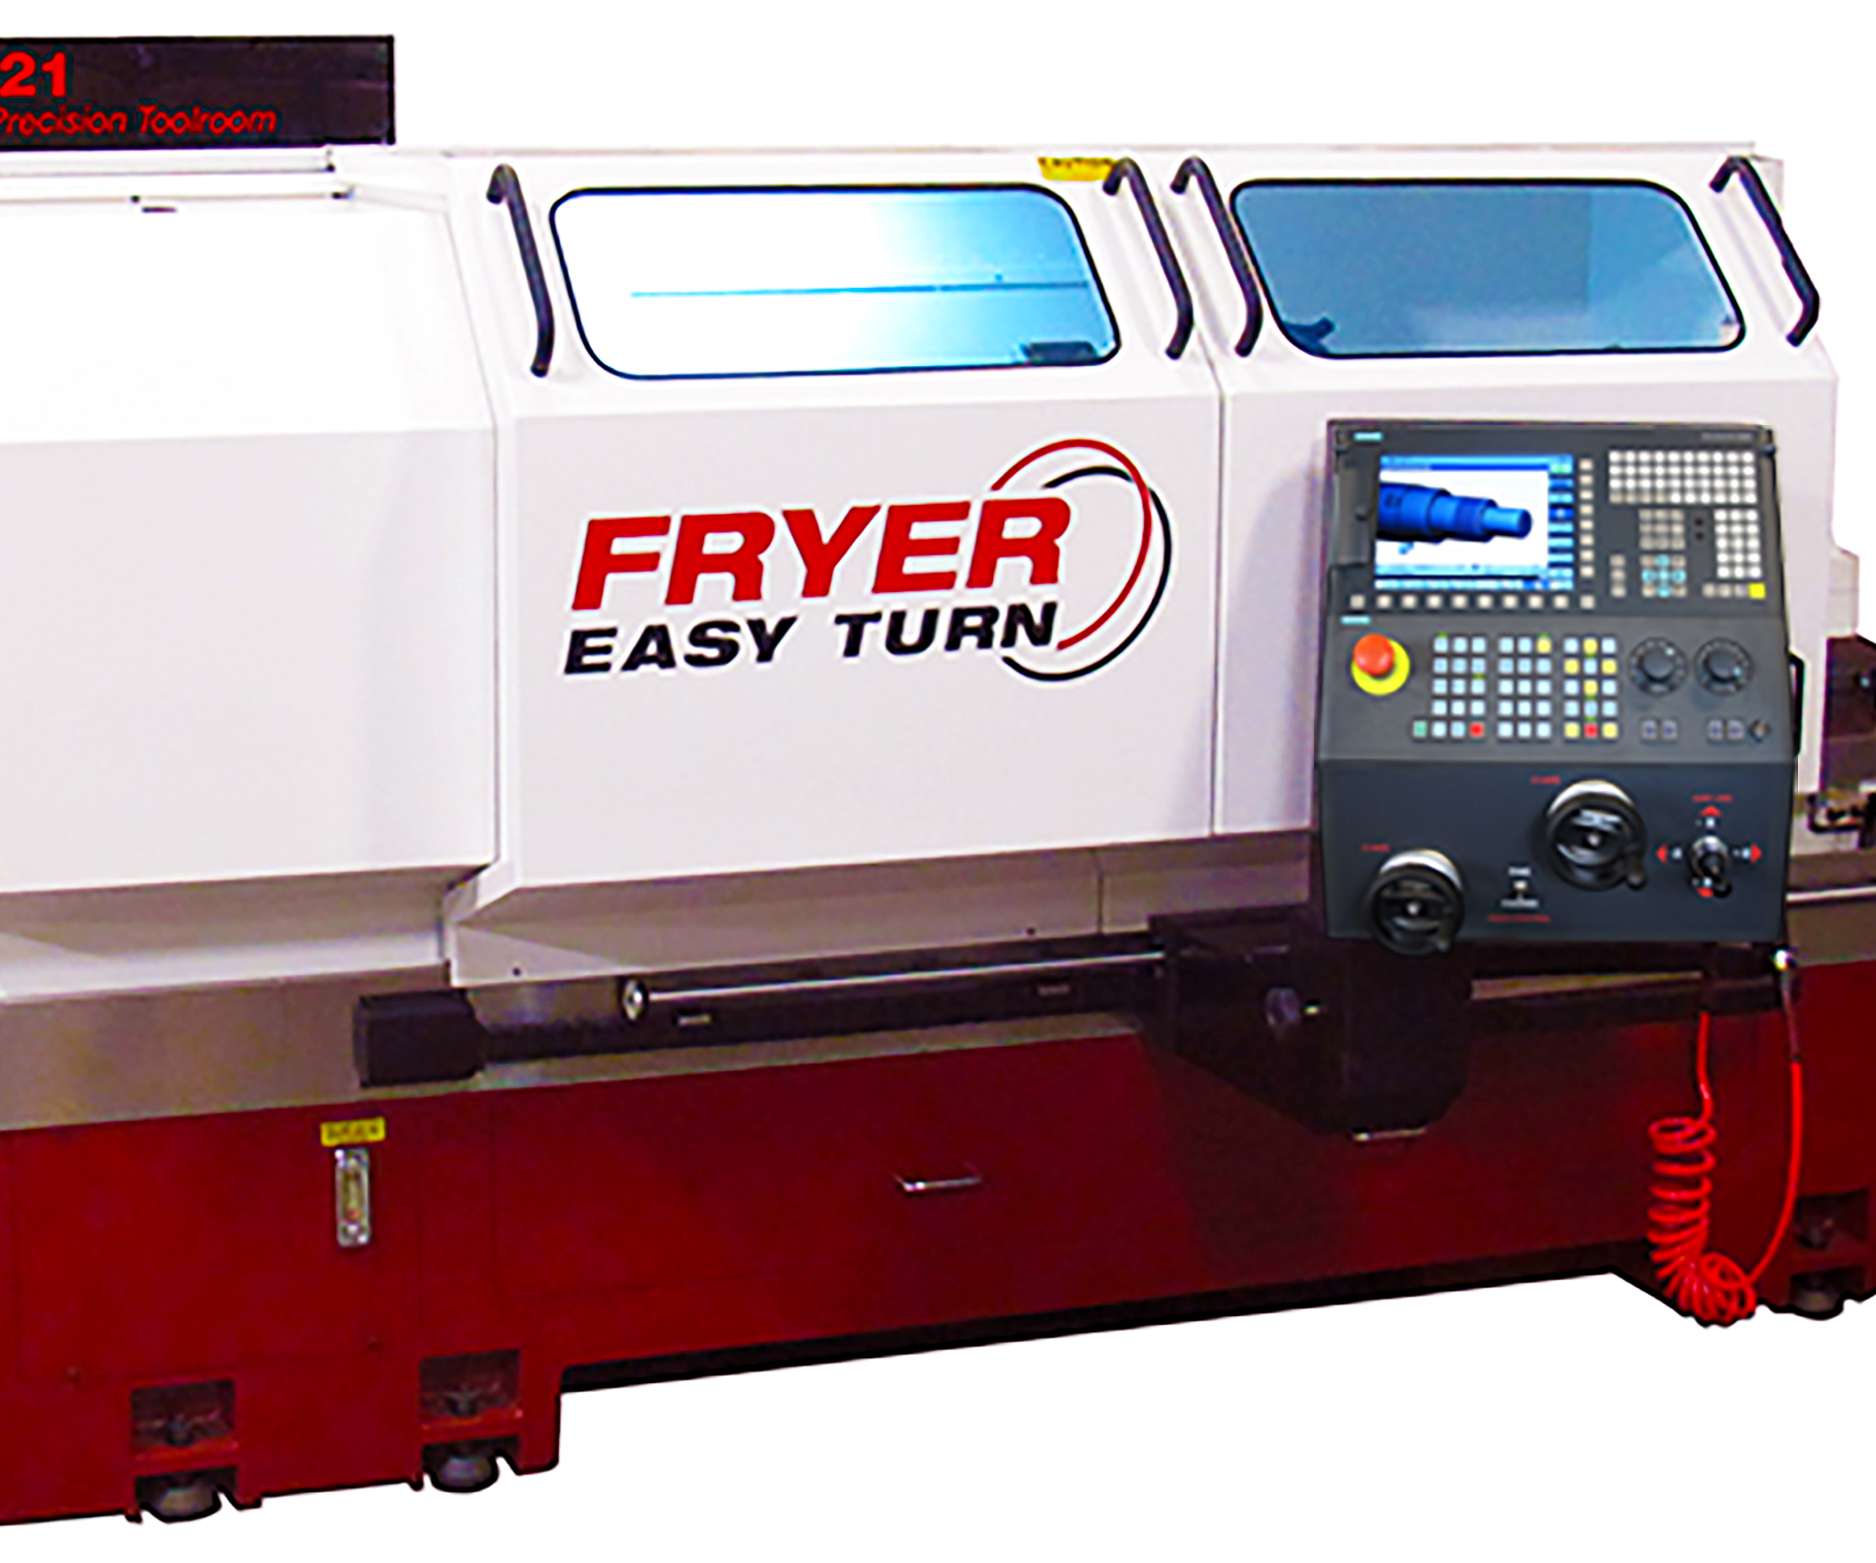 Fryer Easy Turn lathe